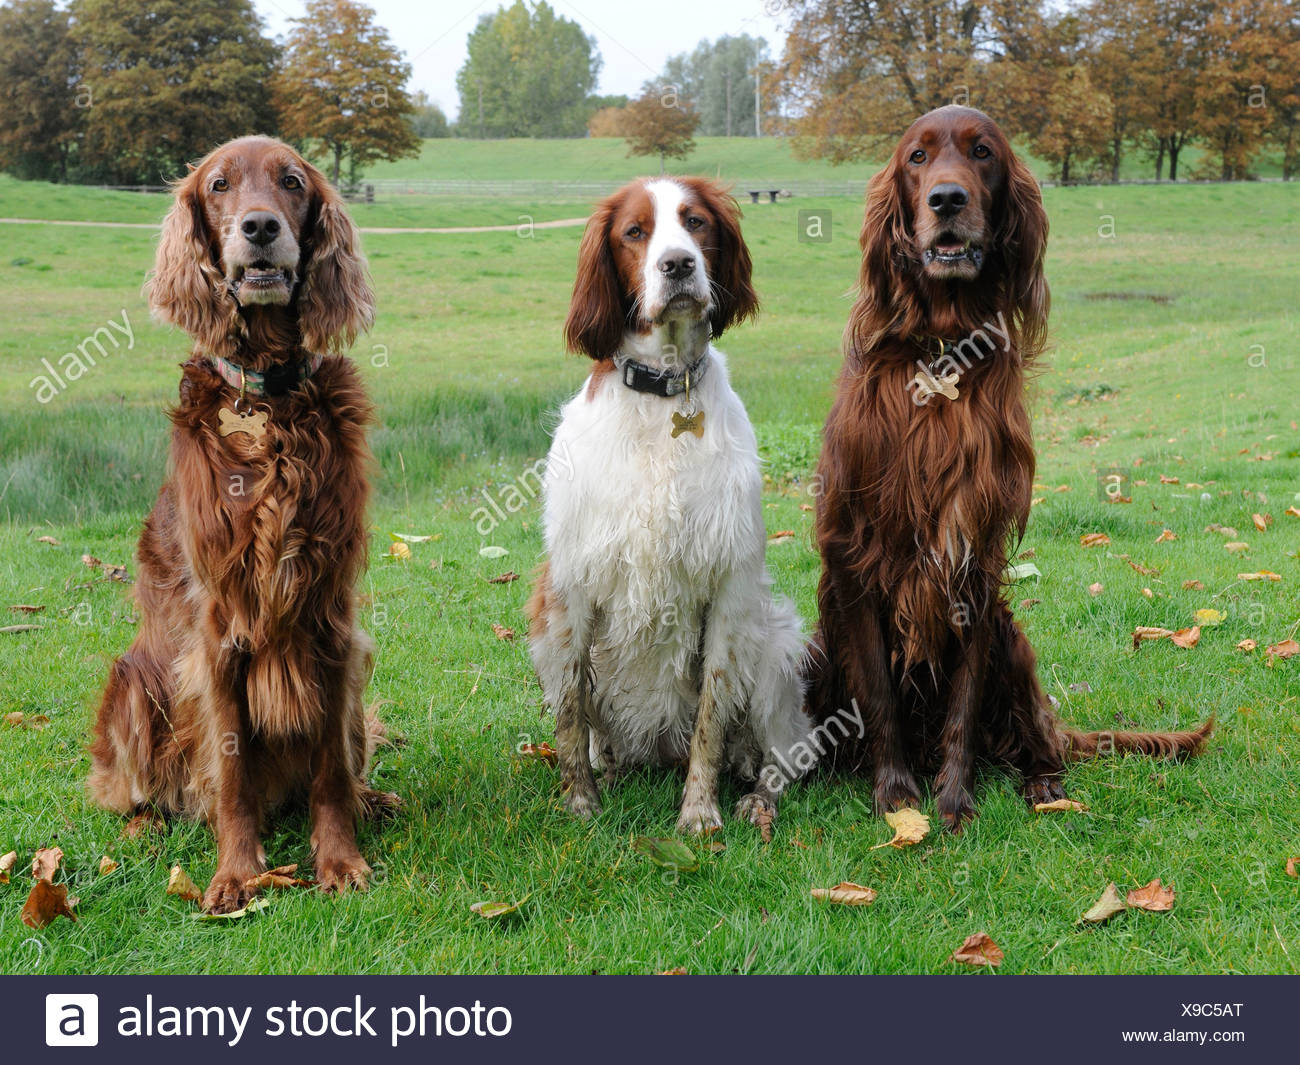 Three dogs that are pedigree setters - Stock Image